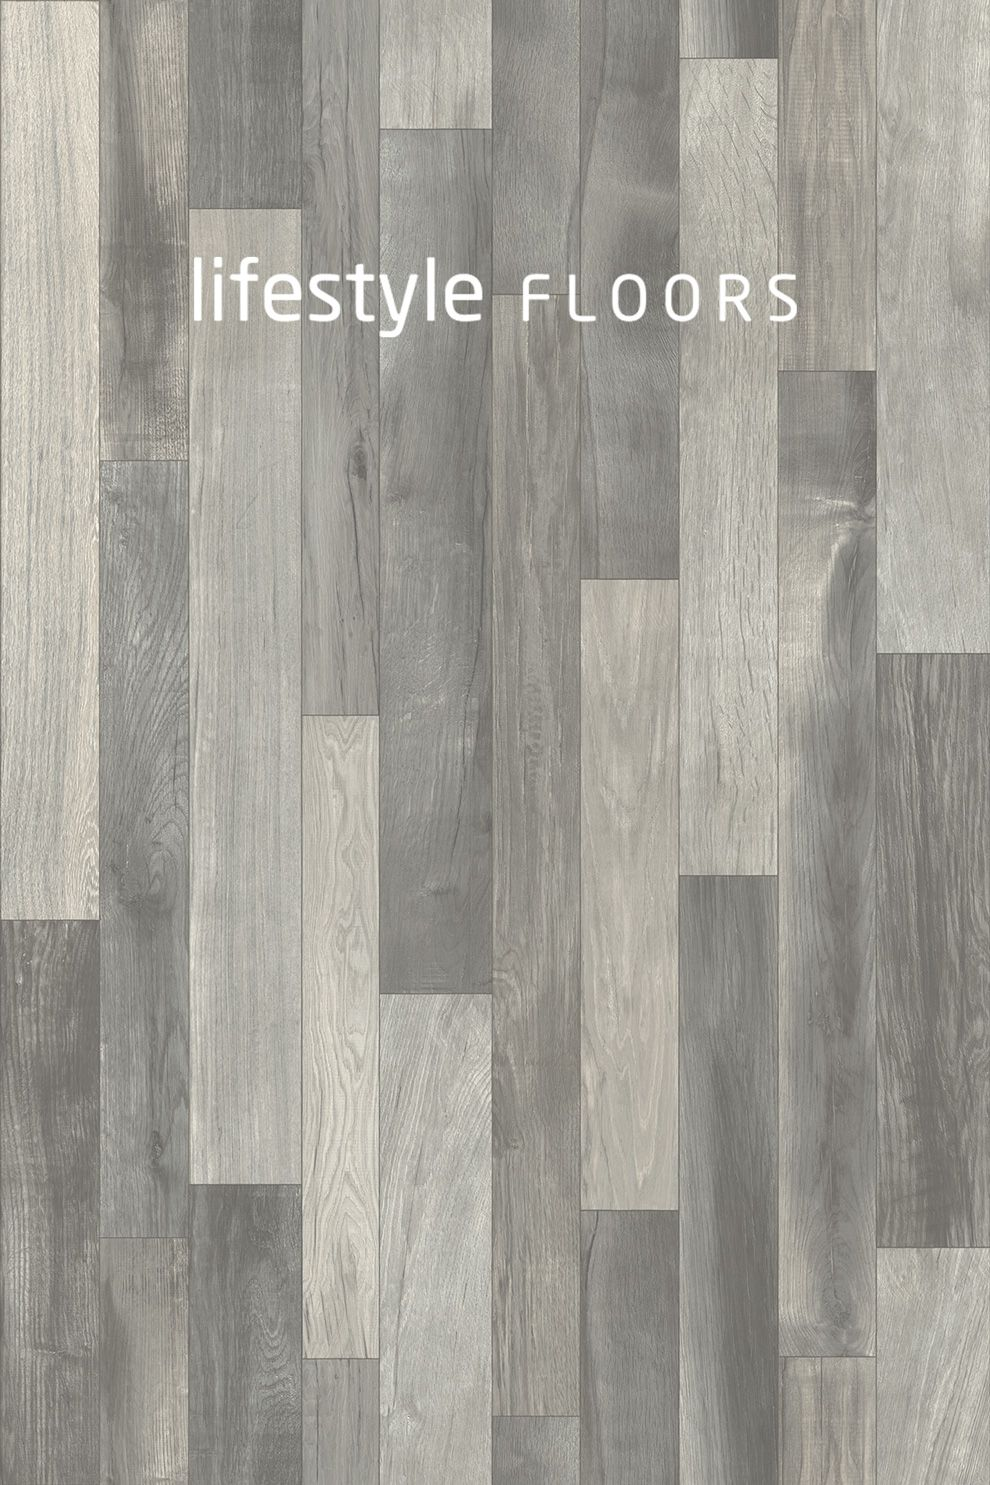 This Vinyl Flooring Is Perfect For Throughout The Home But Especially Kitchens And Bathrooms It S Waterproof Easy To Clean Warm Underfoot